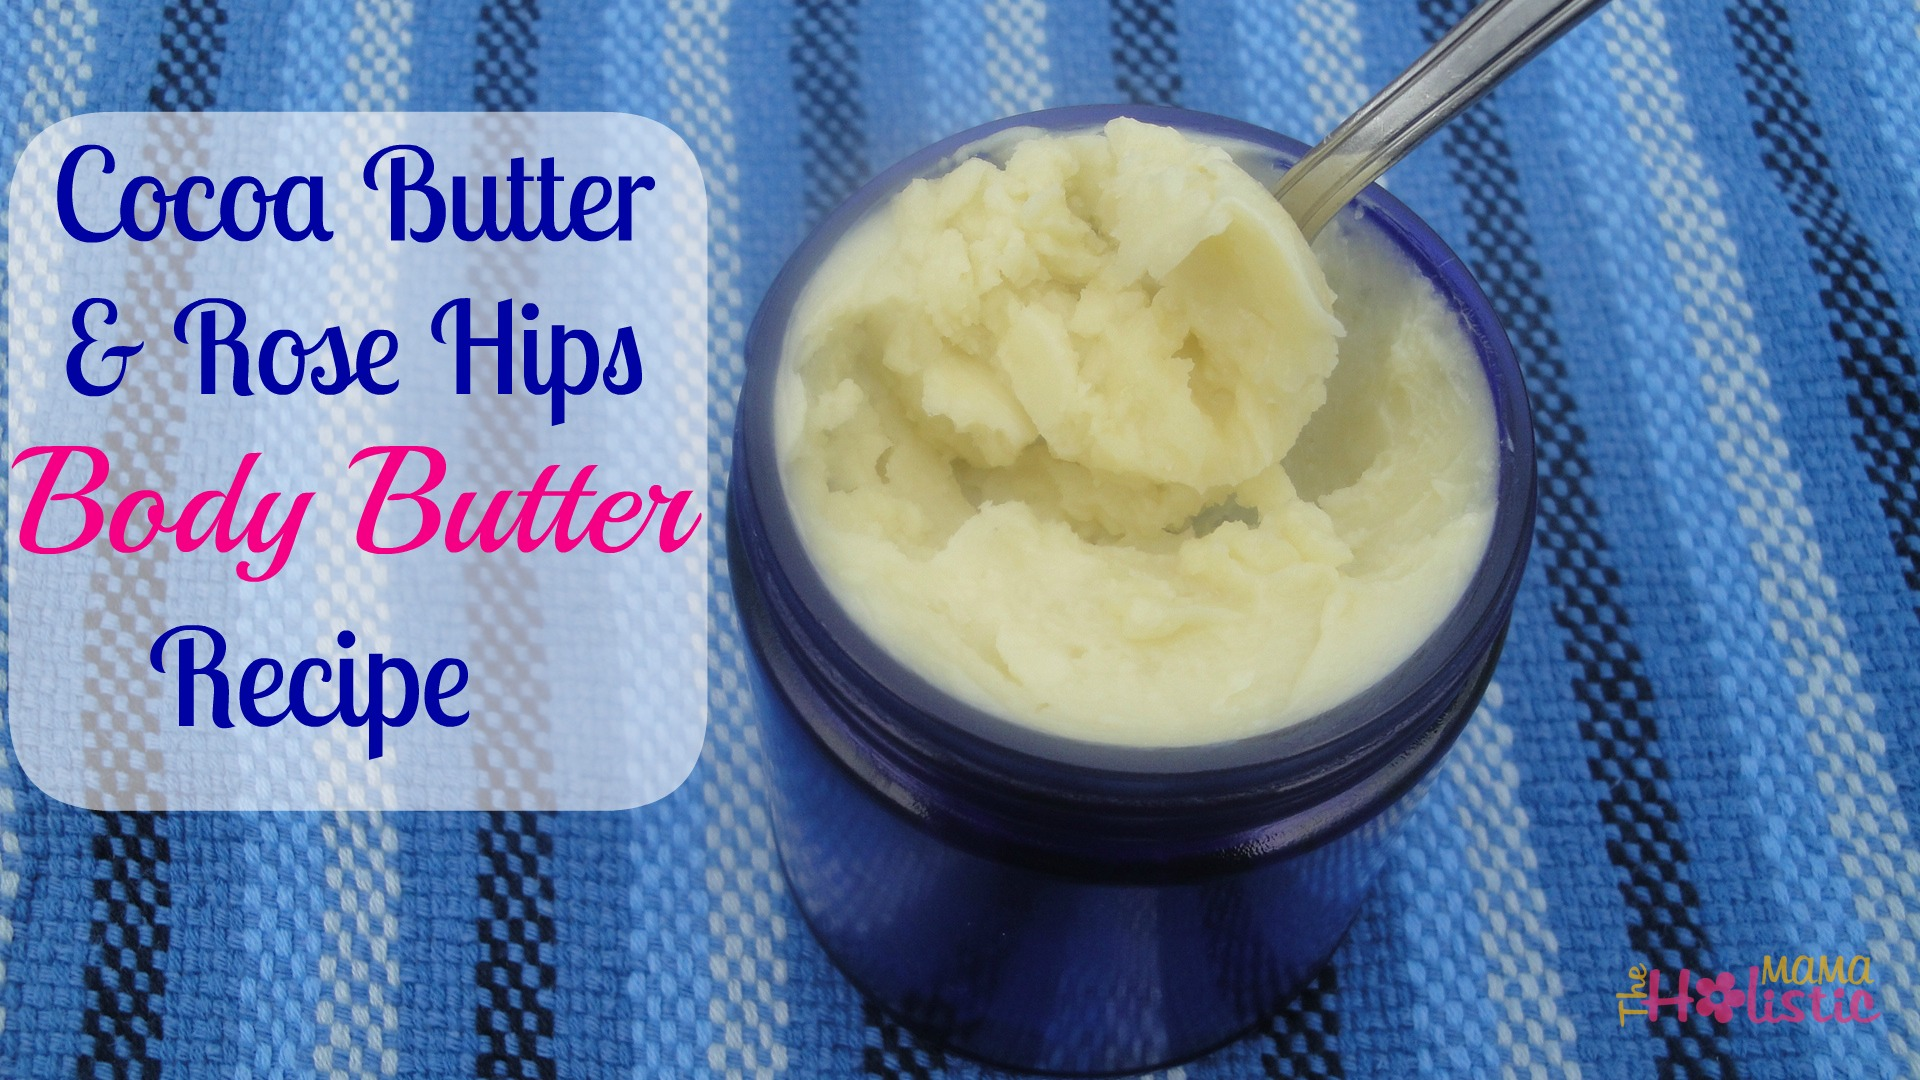 cocoa butter rose hips body butter